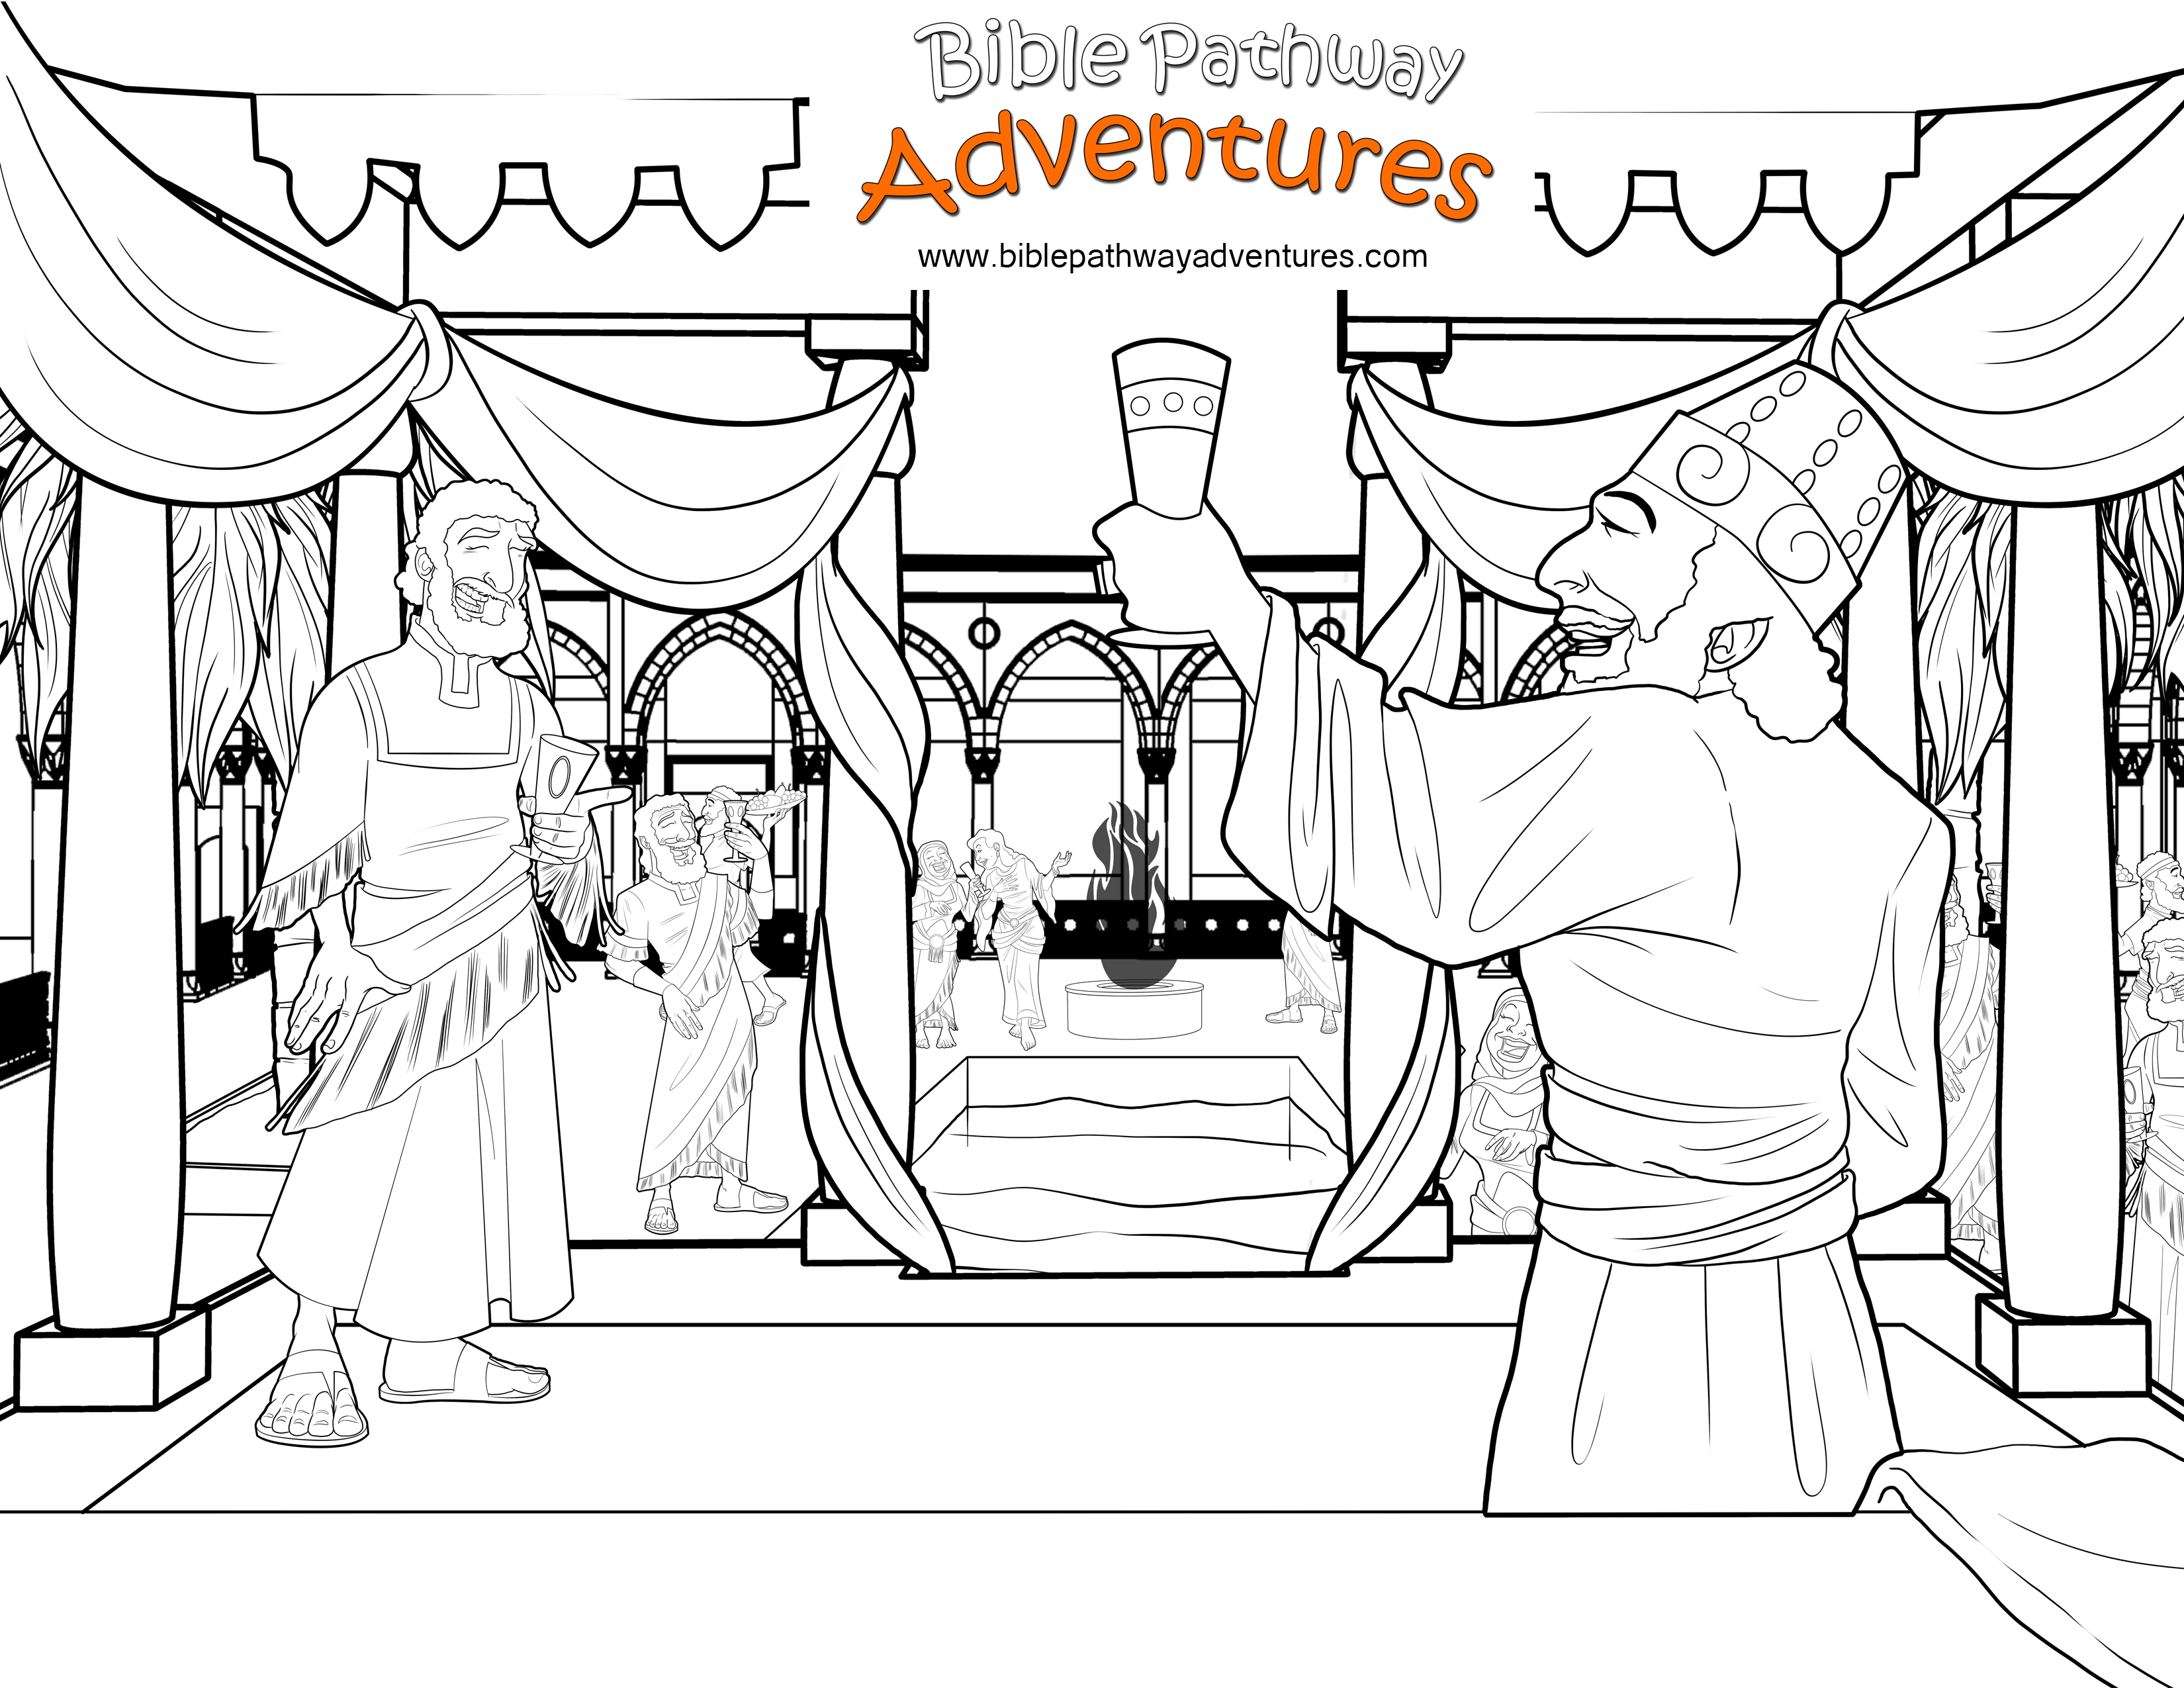 Free Bible Coloring Page: Party With The King of Persia | Bibel ...